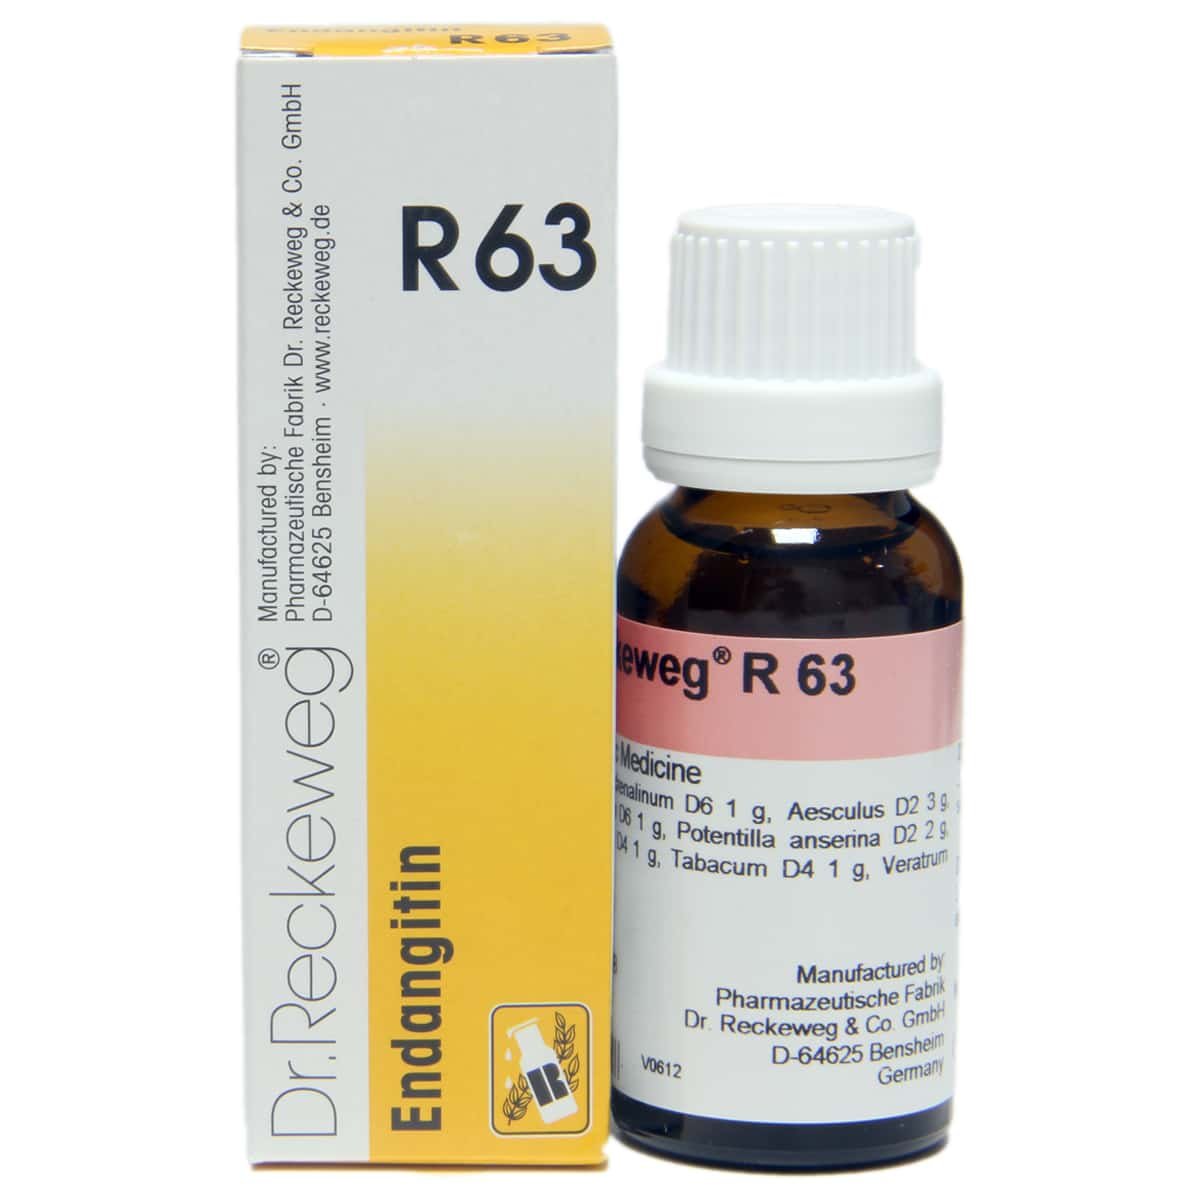 R63-Homeopathicology.com